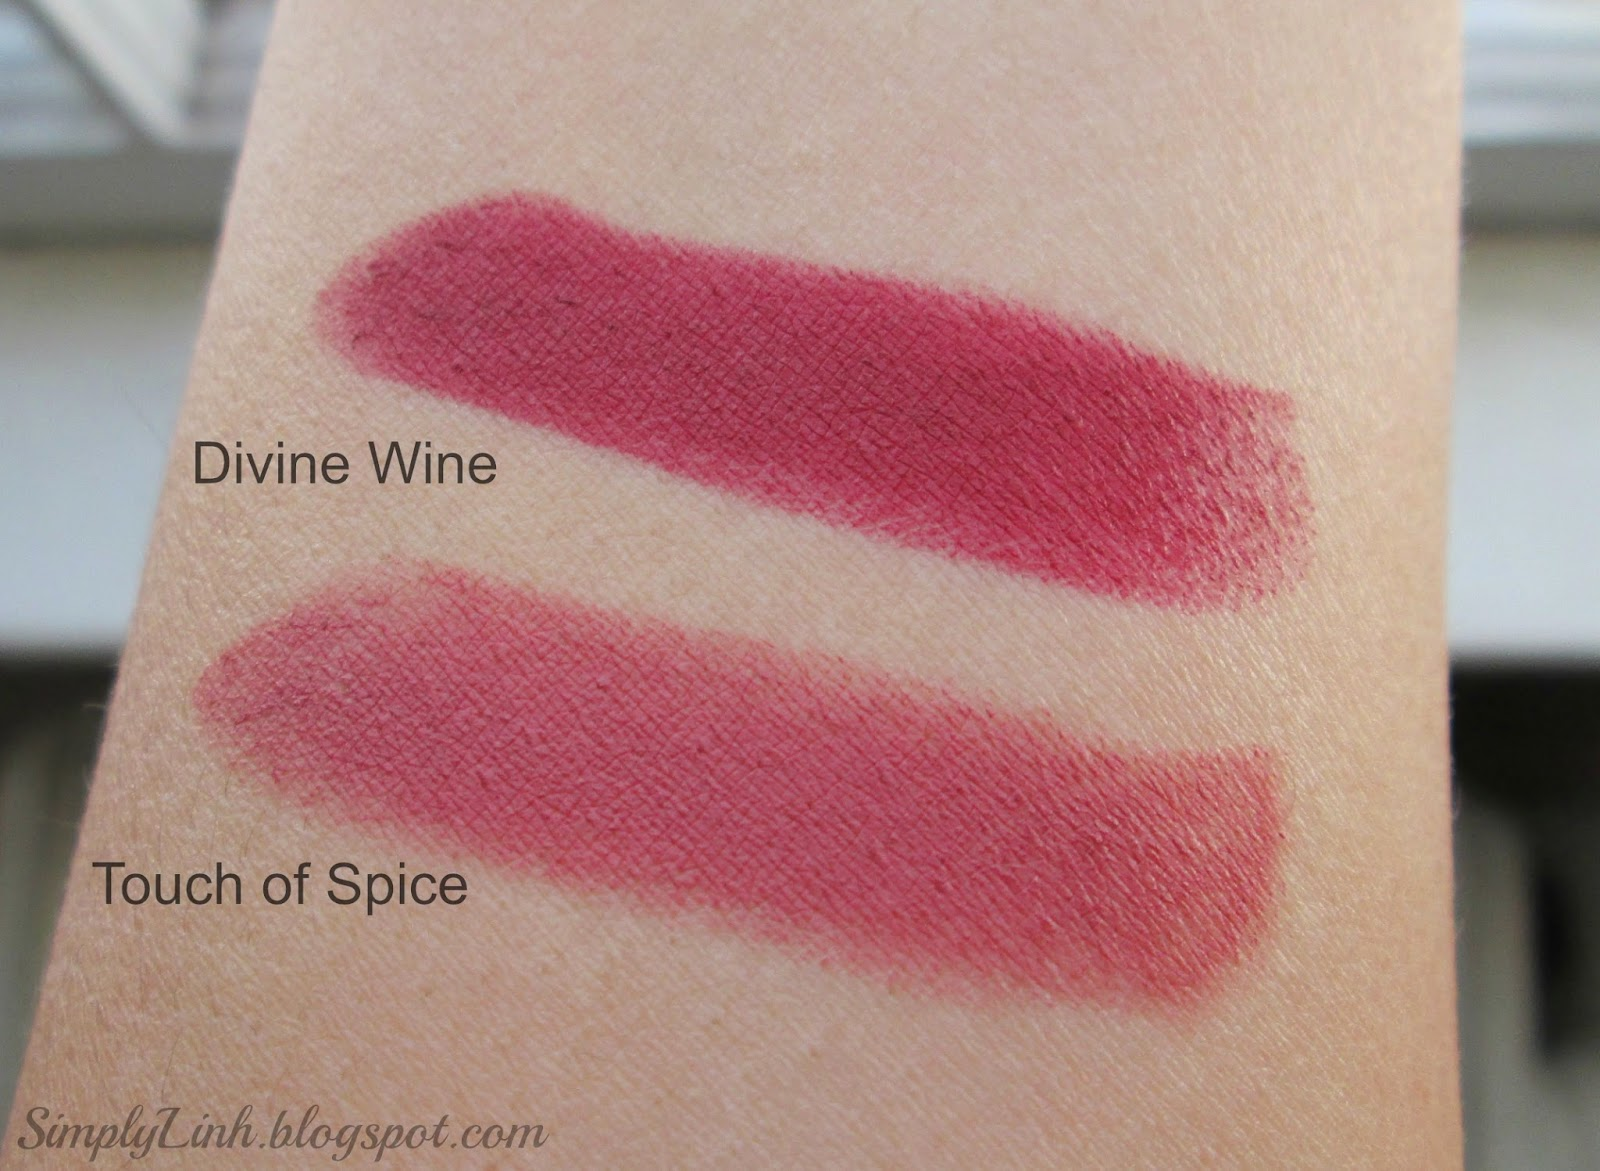 Maybelline Creamy Mattes Lipstick in 'Touch of Spice' and 'Divine Wine' Swatches